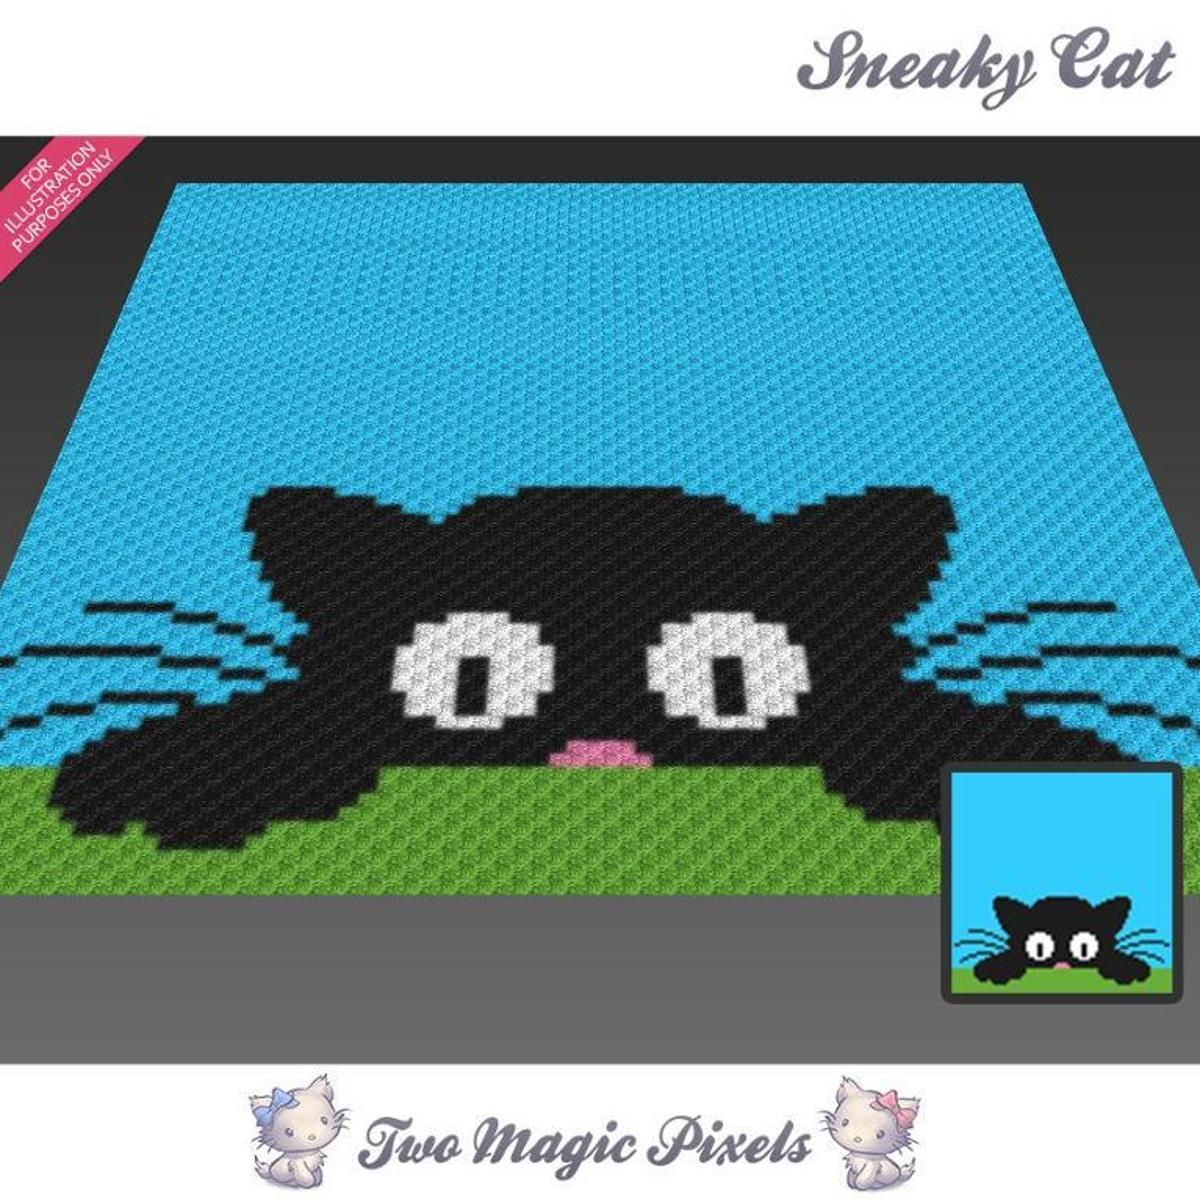 Sneaky Cat C2C Crochet Graph | Pinterest | Crochet, Crochet animals ...